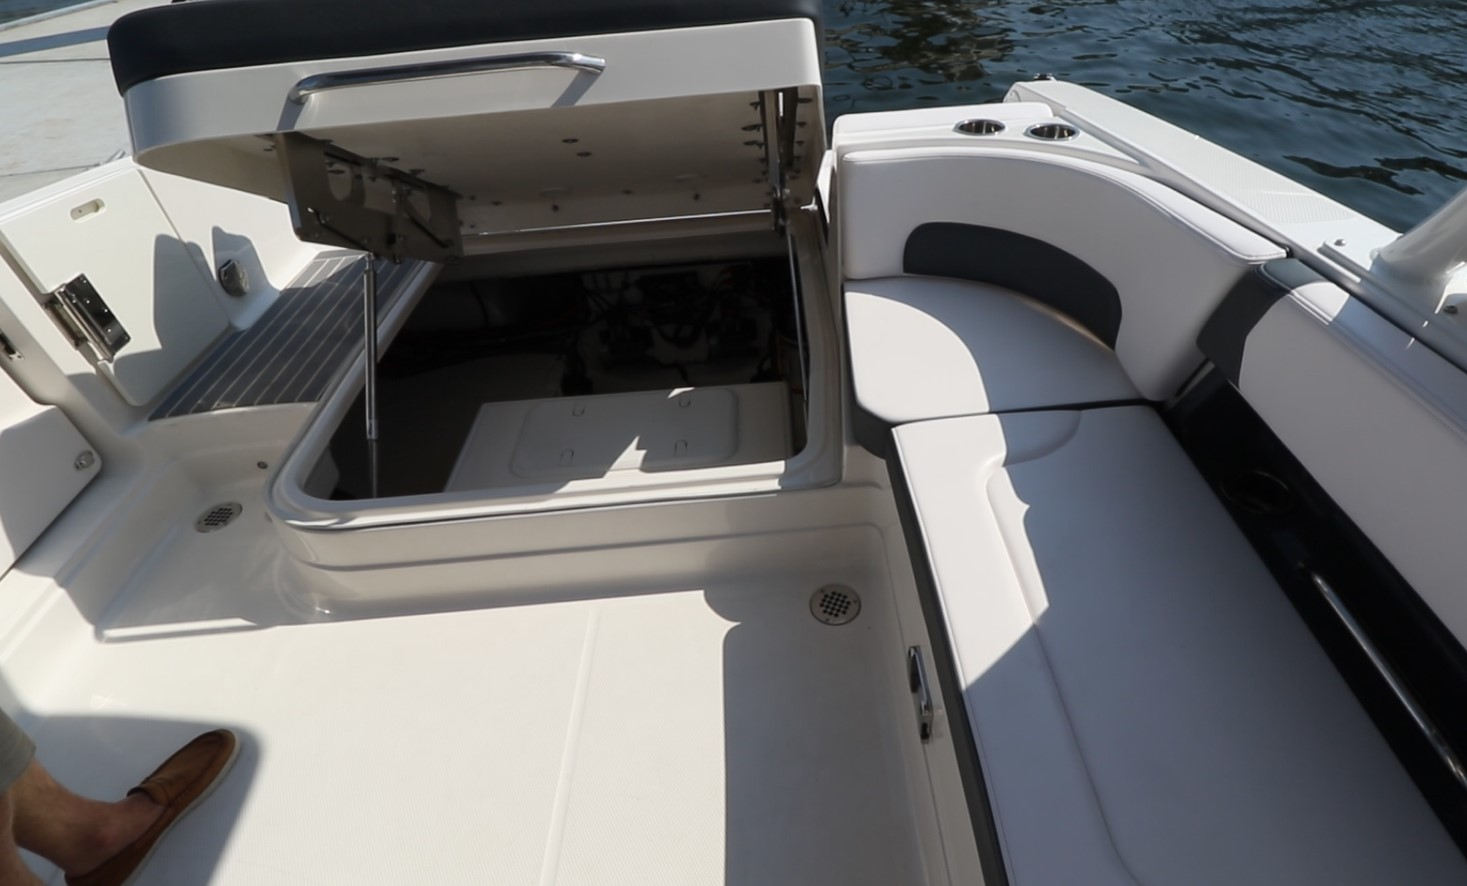 Boat mechanical compartment